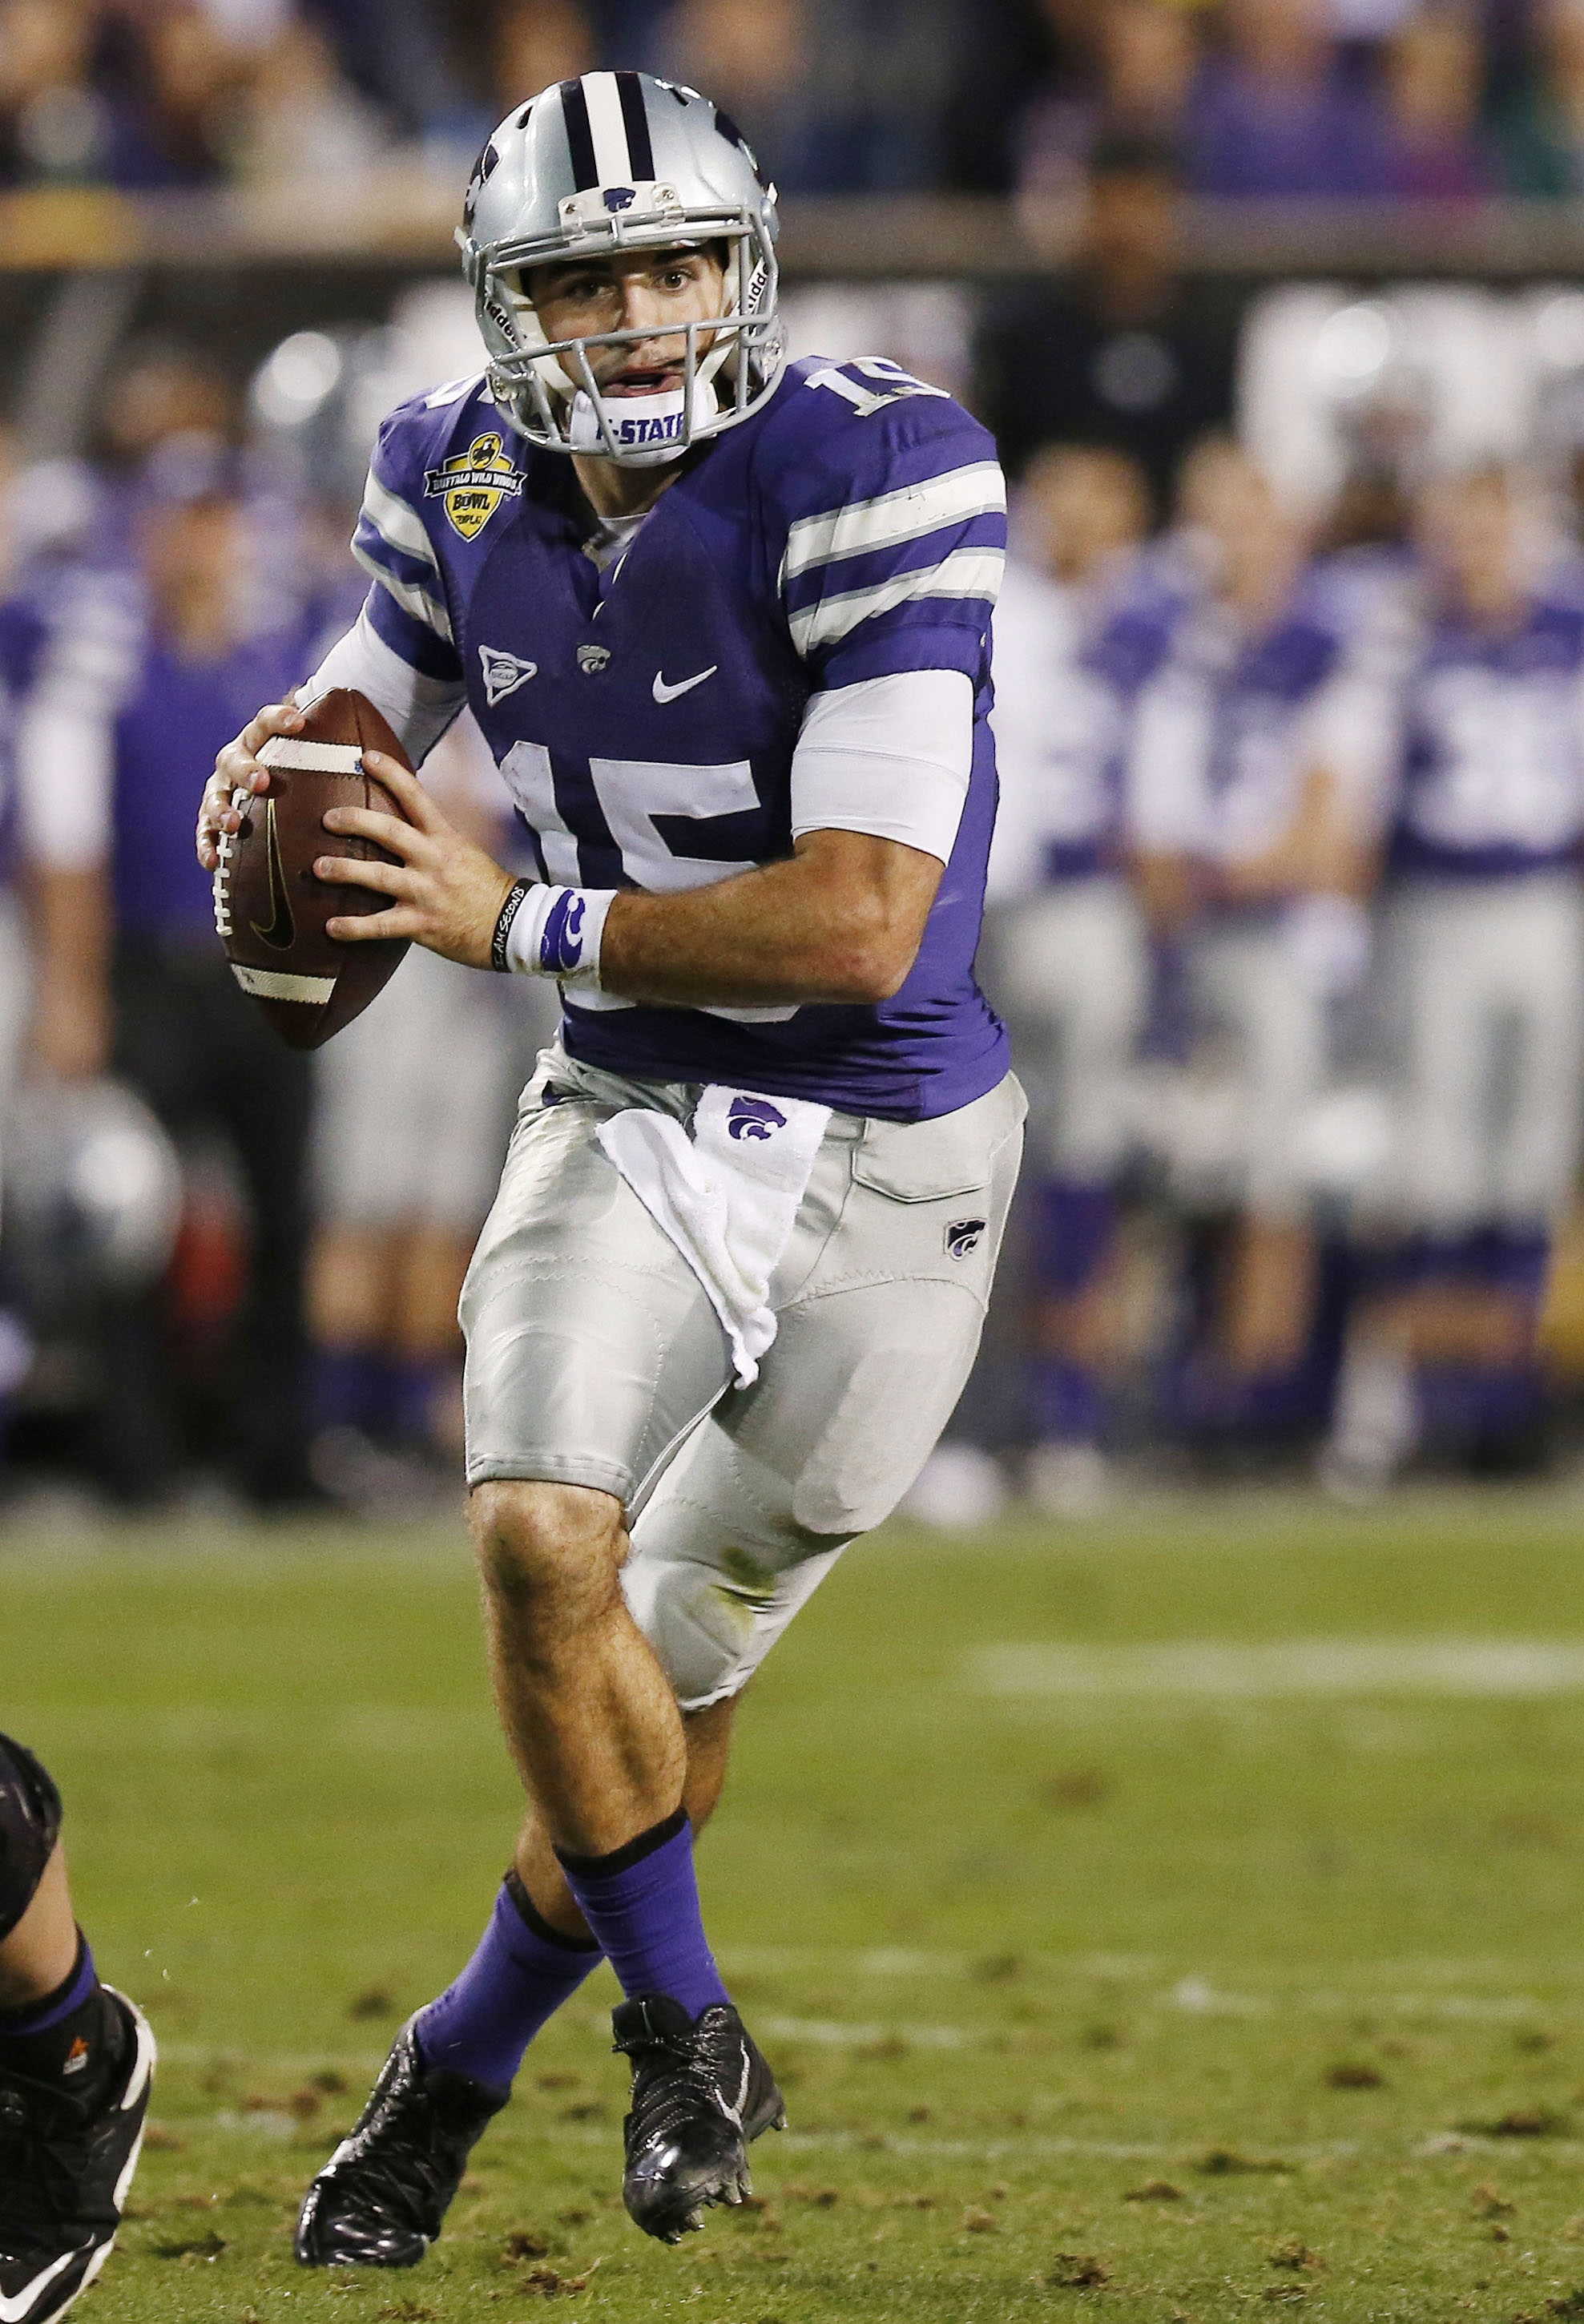 Kansas State's Jake Waters rolls out to pass the ball against Michigan during the second half of the Buffalo Wild Wings Bowl NCAA college football game, Saturday, Dec. 28, 2013, in Tempe, Ariz. Kansas State defeated Michigan 31-14